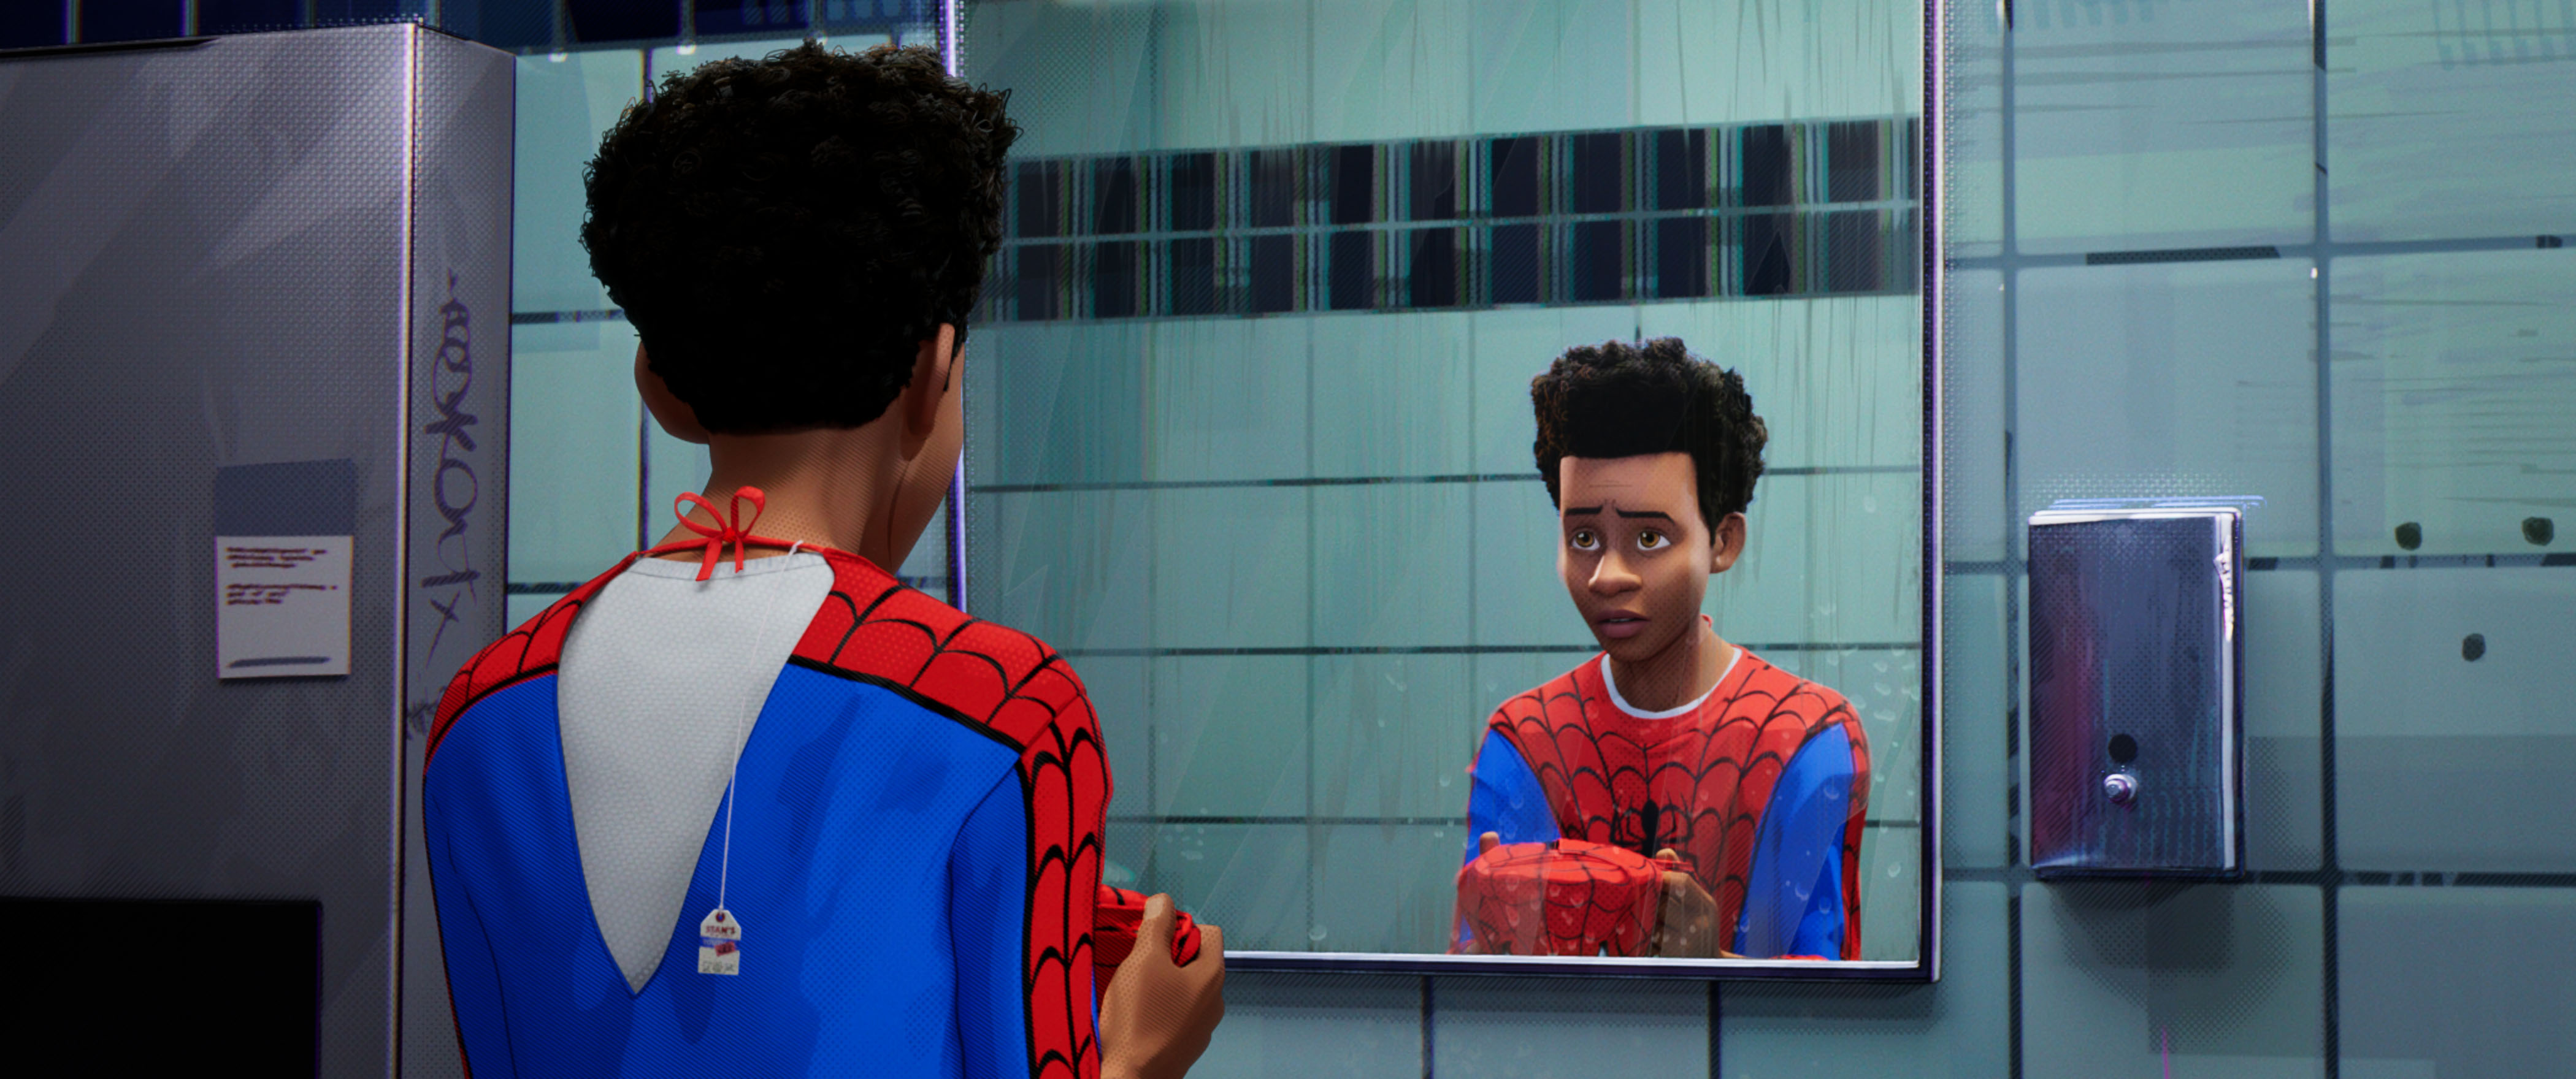 miles morales is a